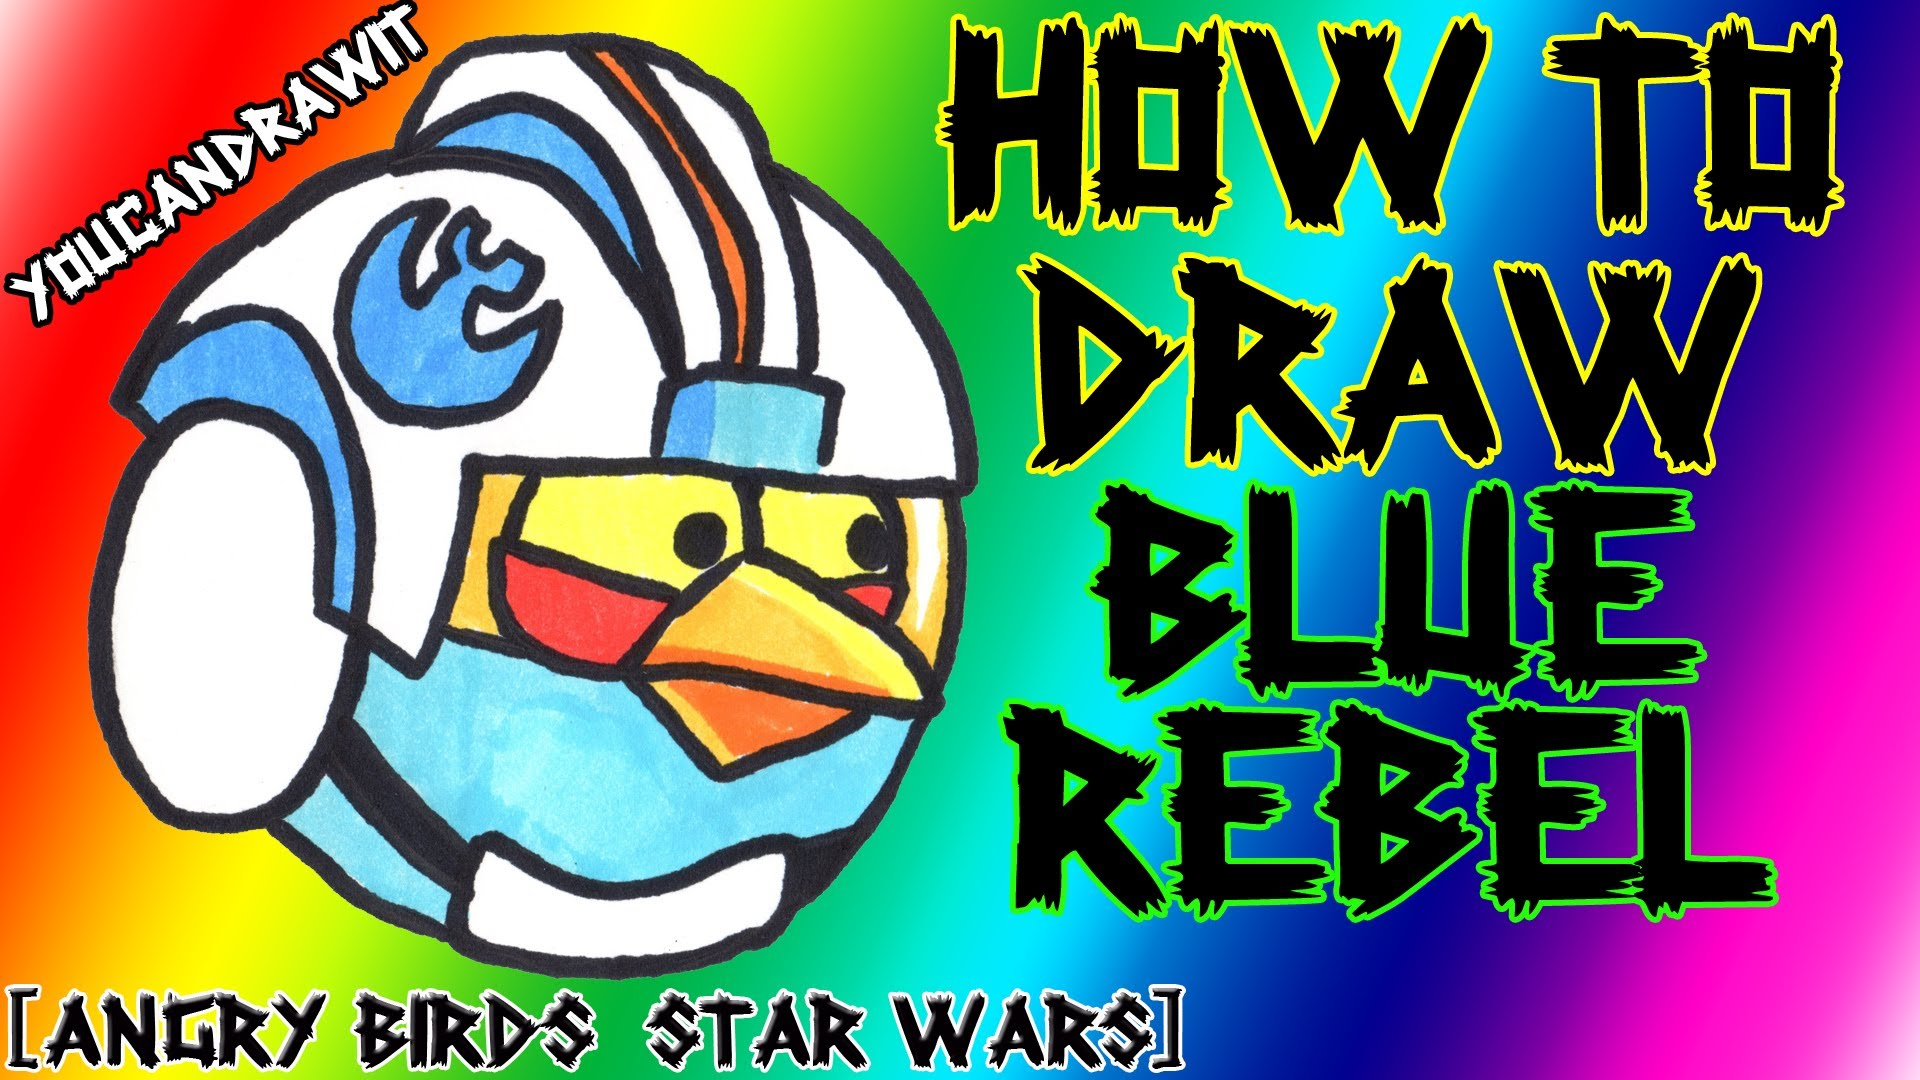 1920x1080 How To Draw Blue Rebel Pilot Bird From Angry Birds Star Wars